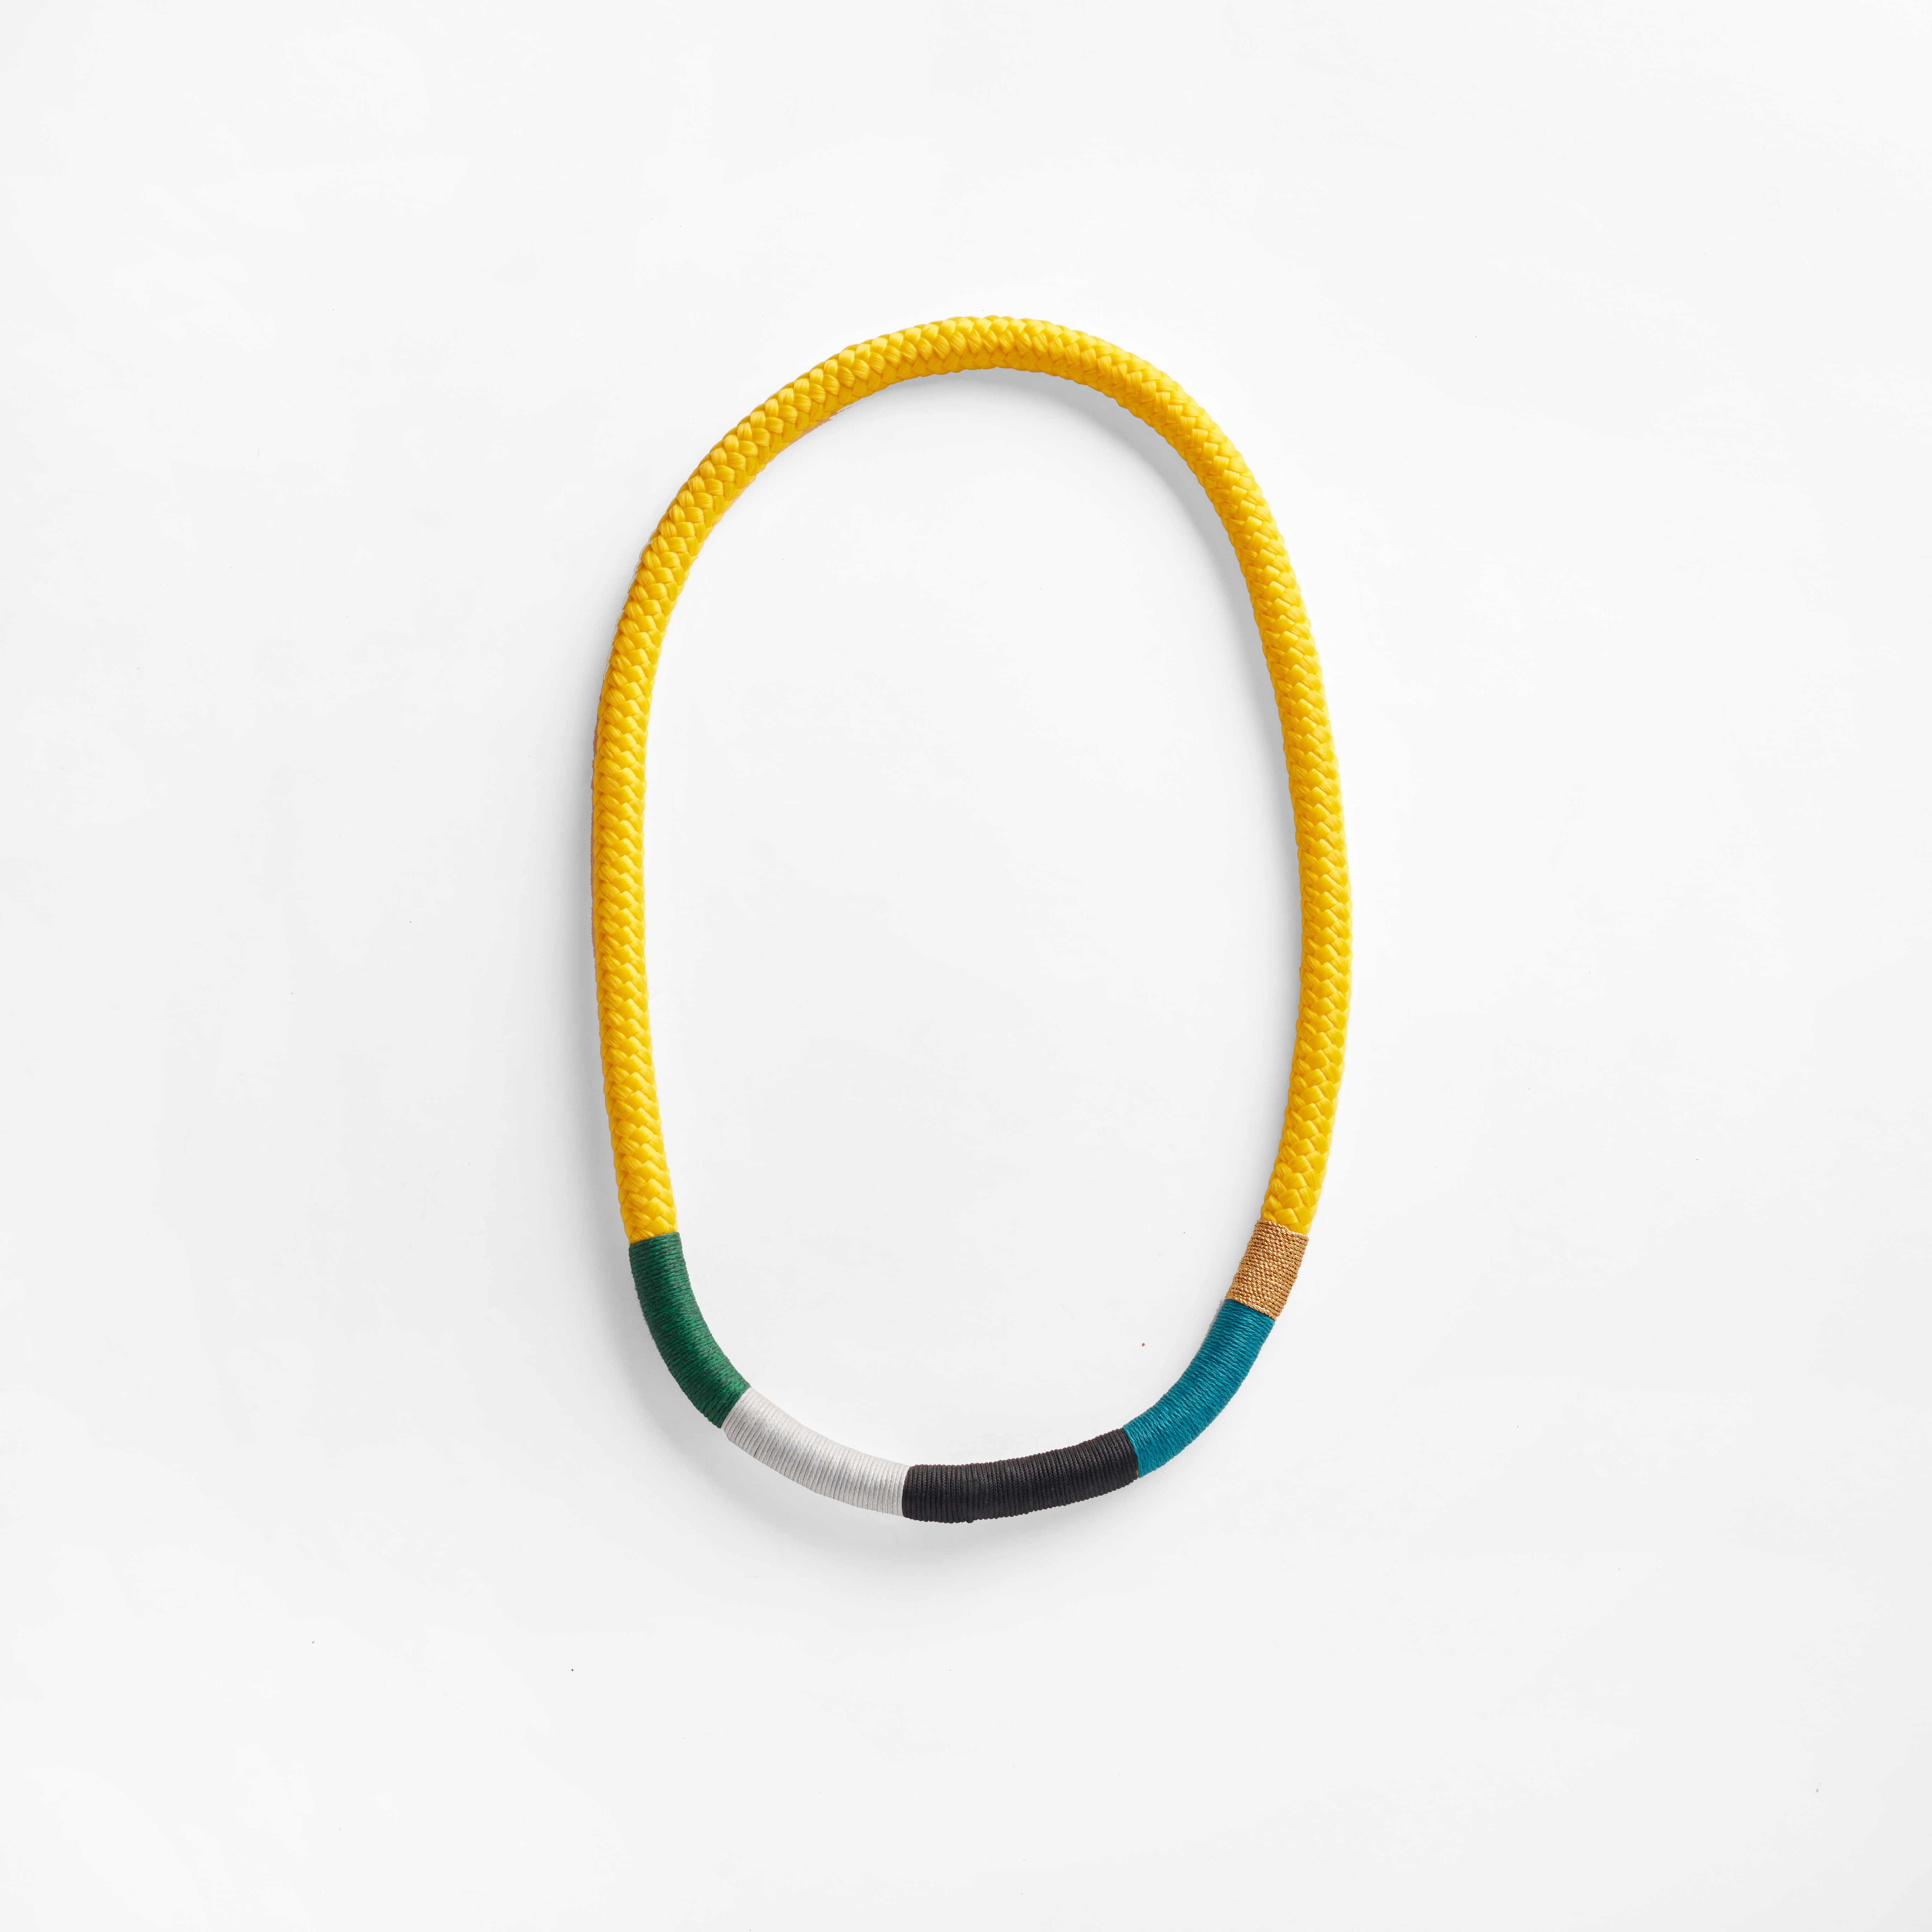 1 thin ndebele necklace yellow (PIC014-YW) HR